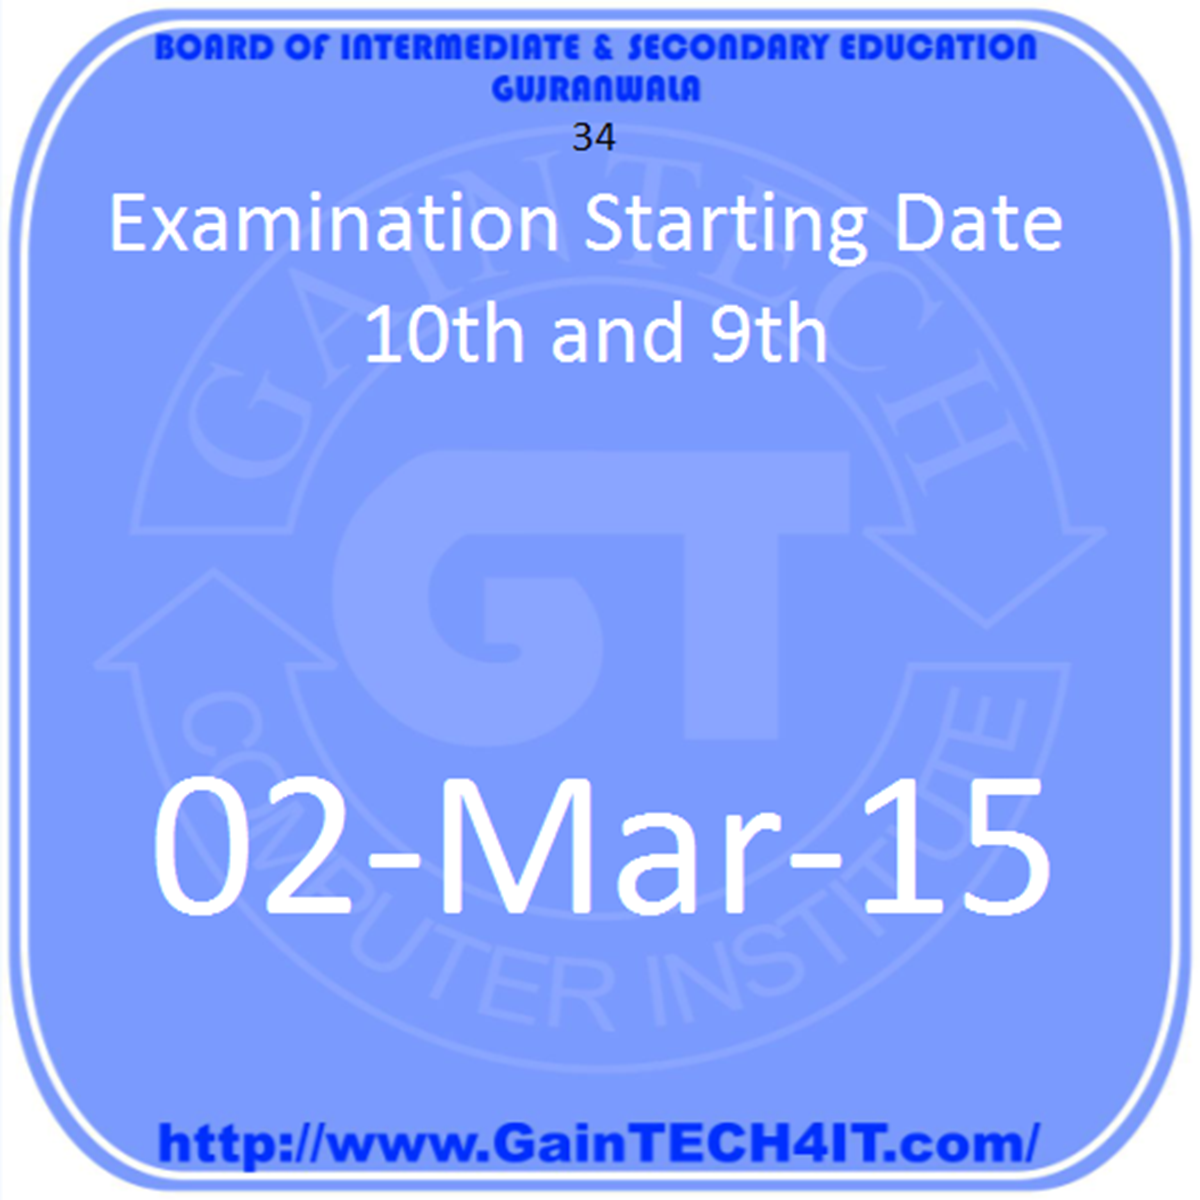 Examination Starting Date 10th and 9th - Gujranwala Board